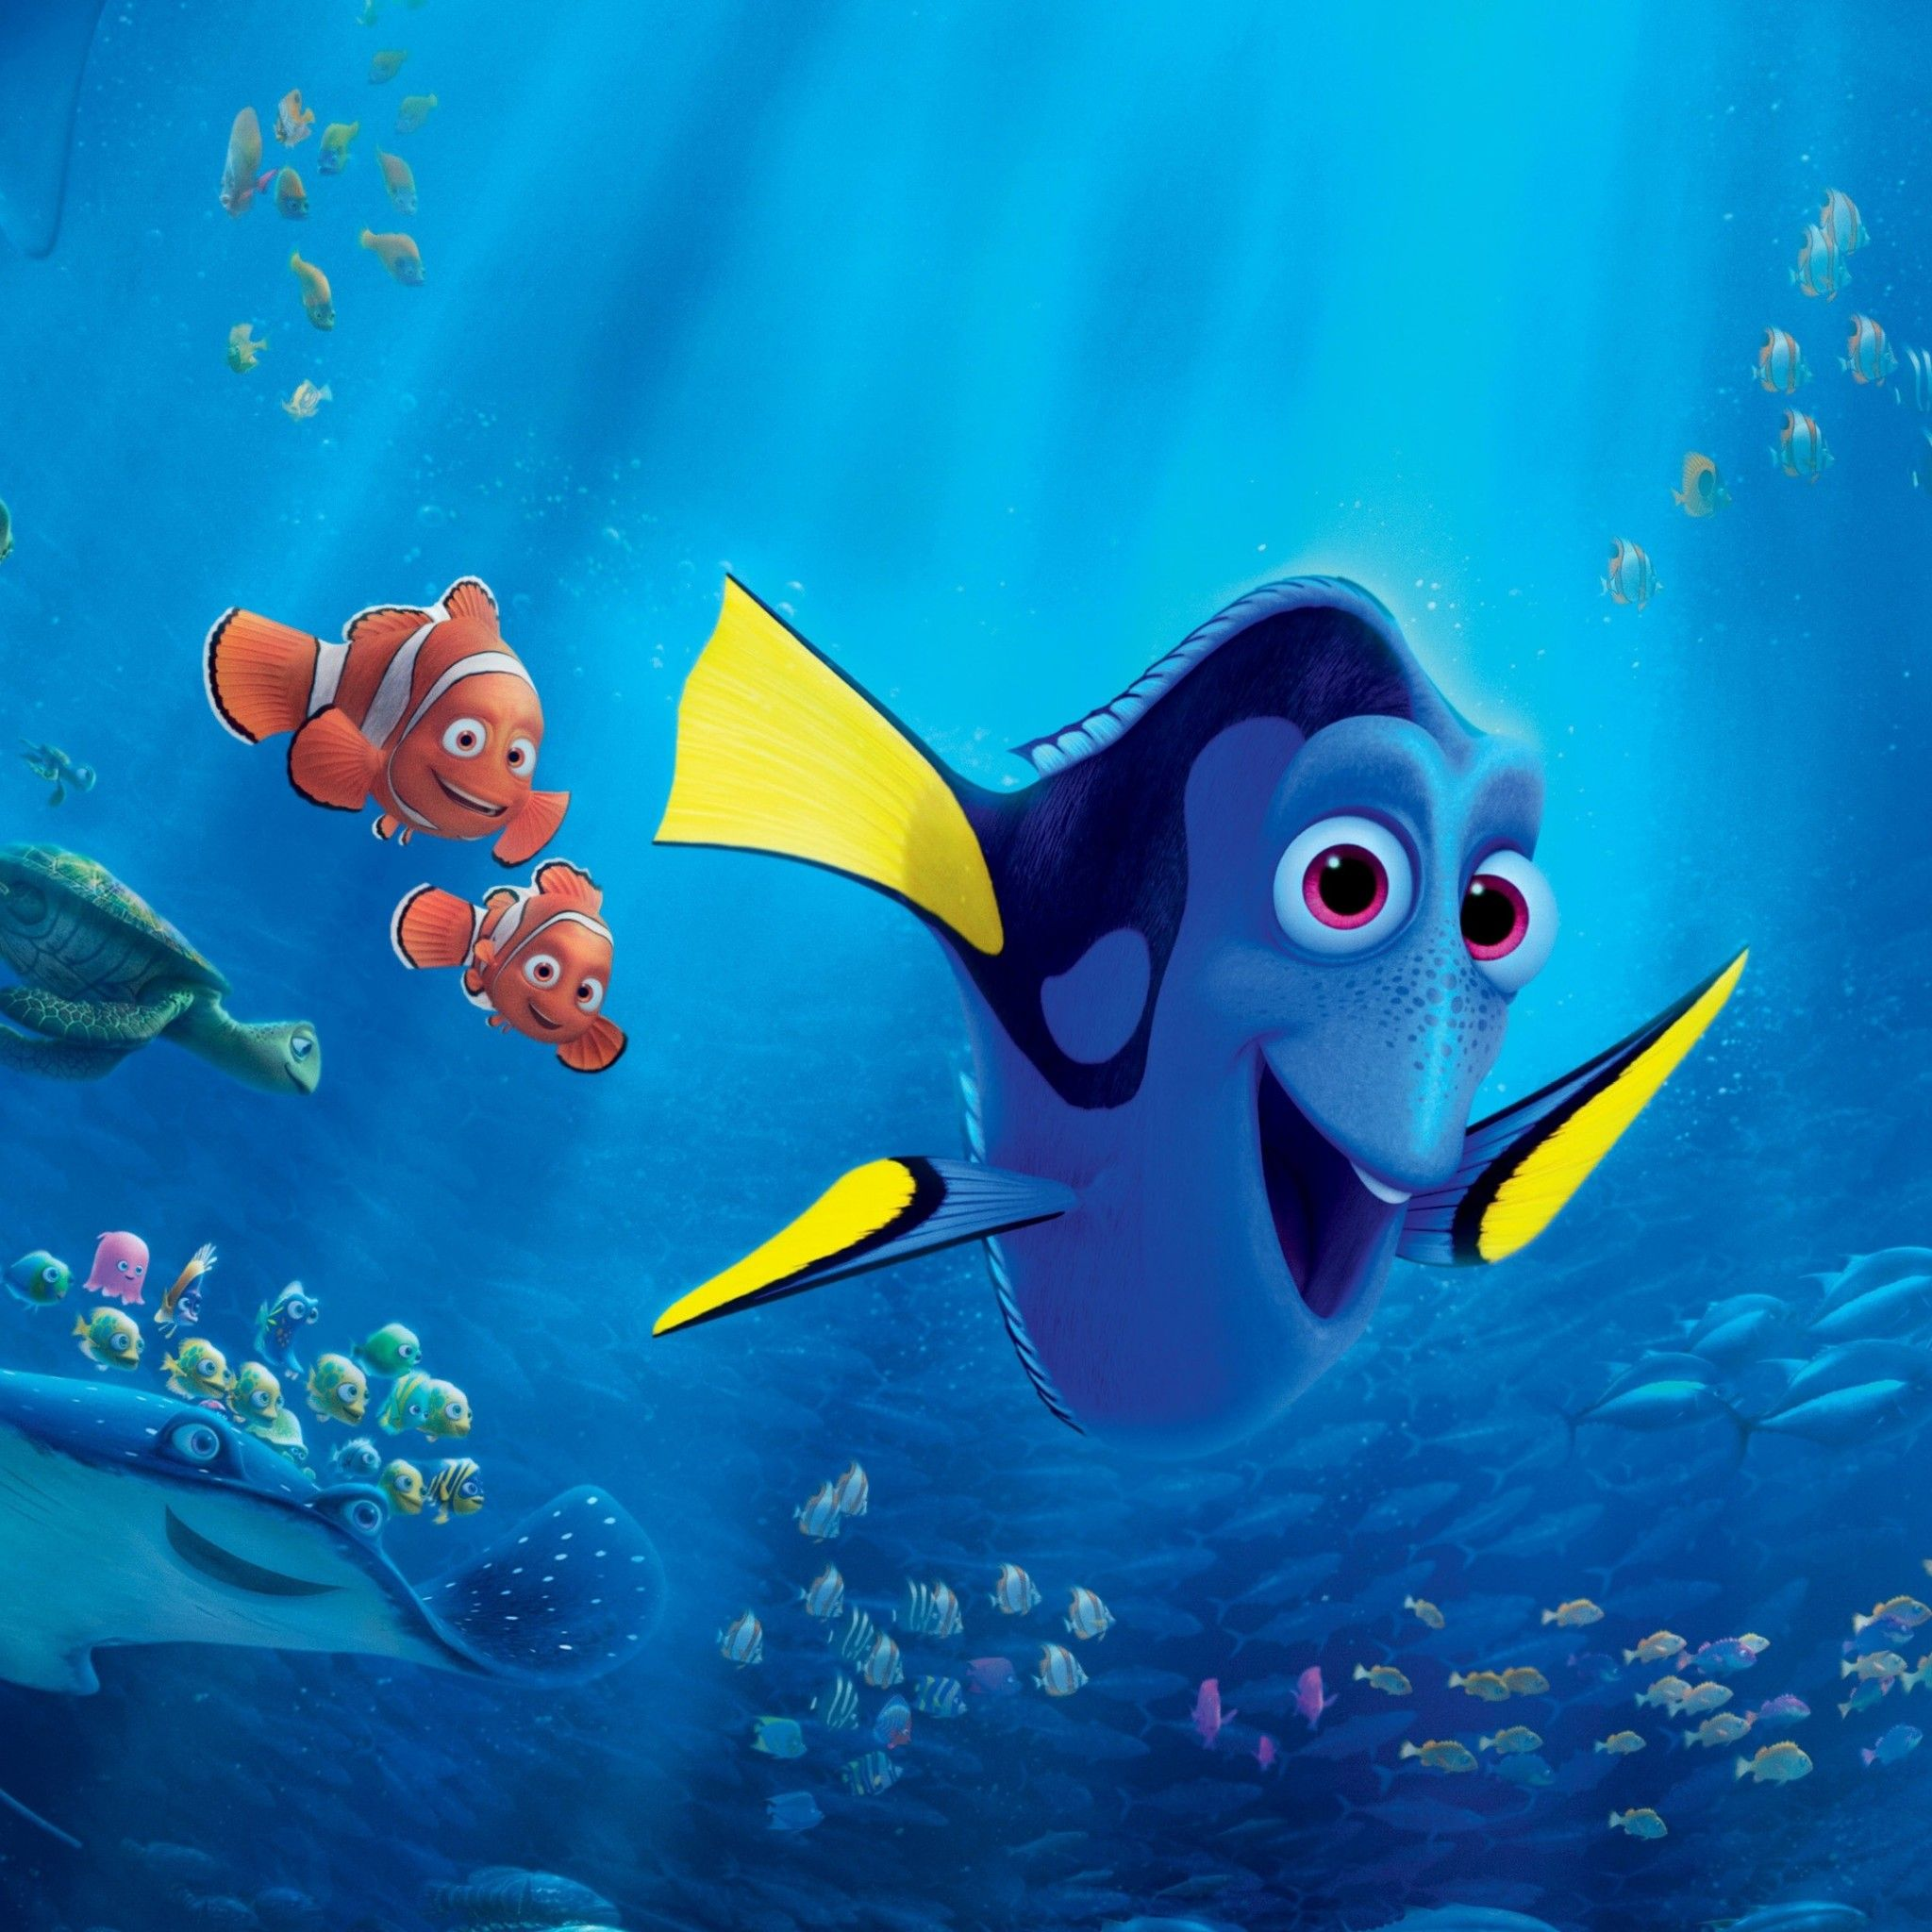 Dory Friends Iconic Movie Quotes Finding Dory Iconic Movies